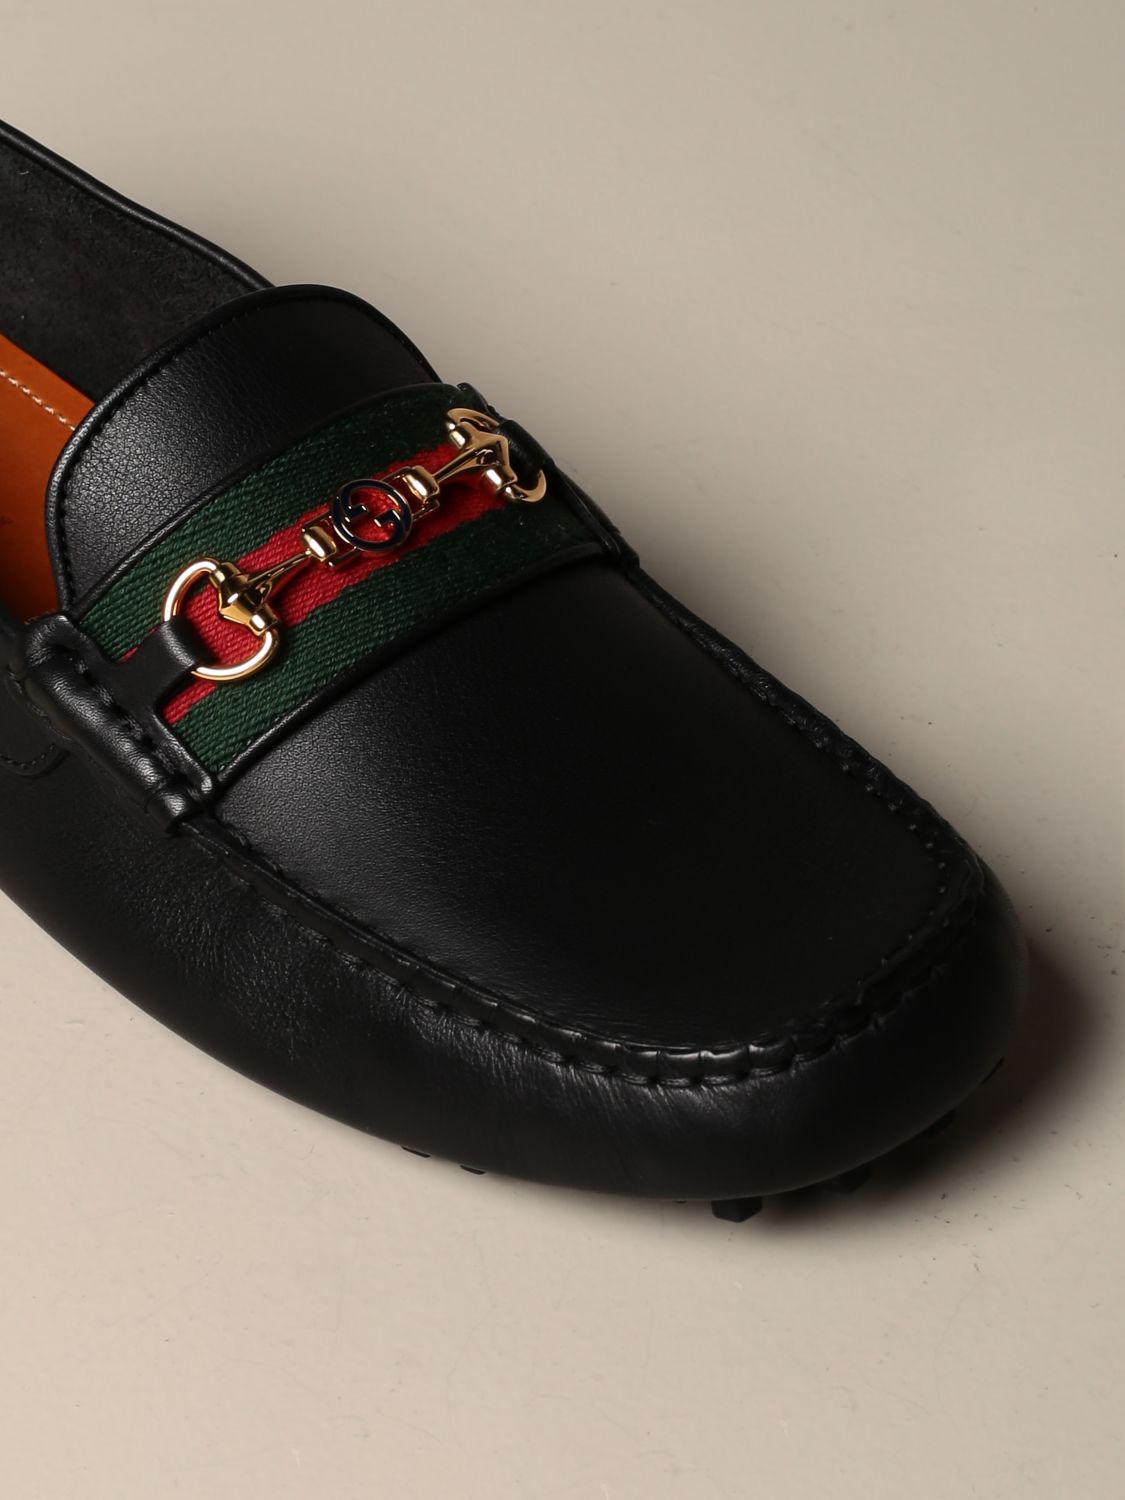 Gucci Ayrton driver leather moccasin